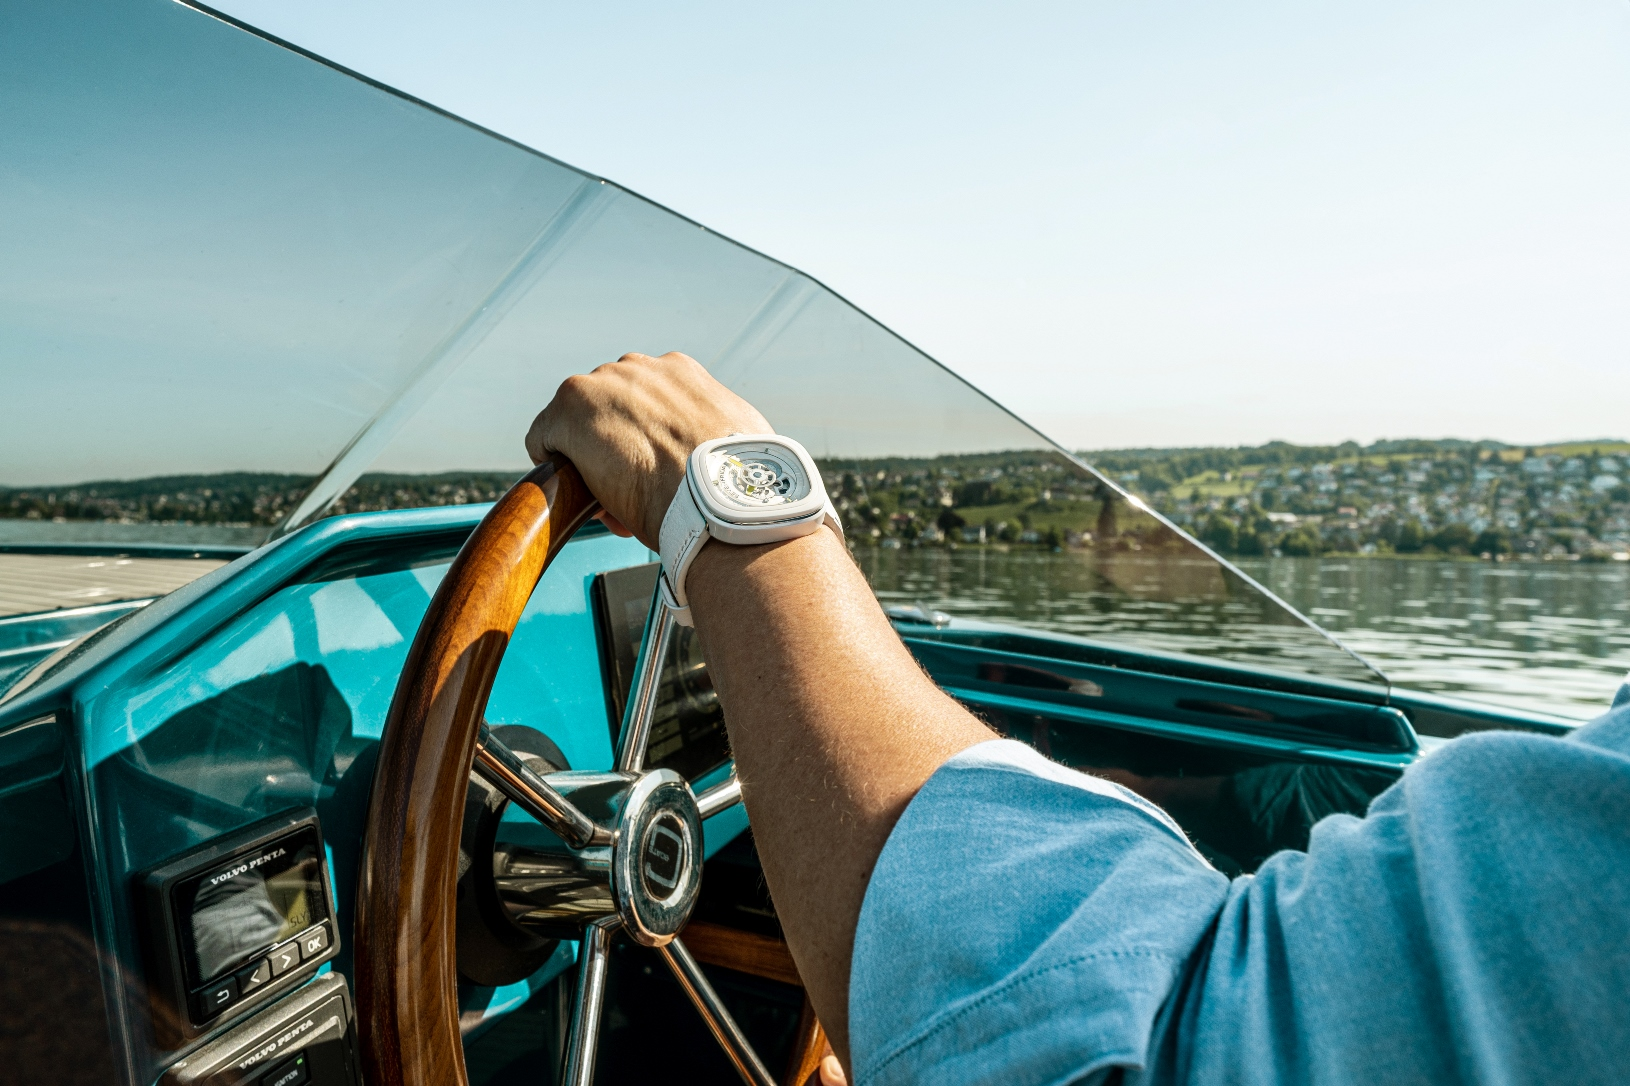 The P1C/04 Caipi, a New Luxury Summer Watch by SevenFriday